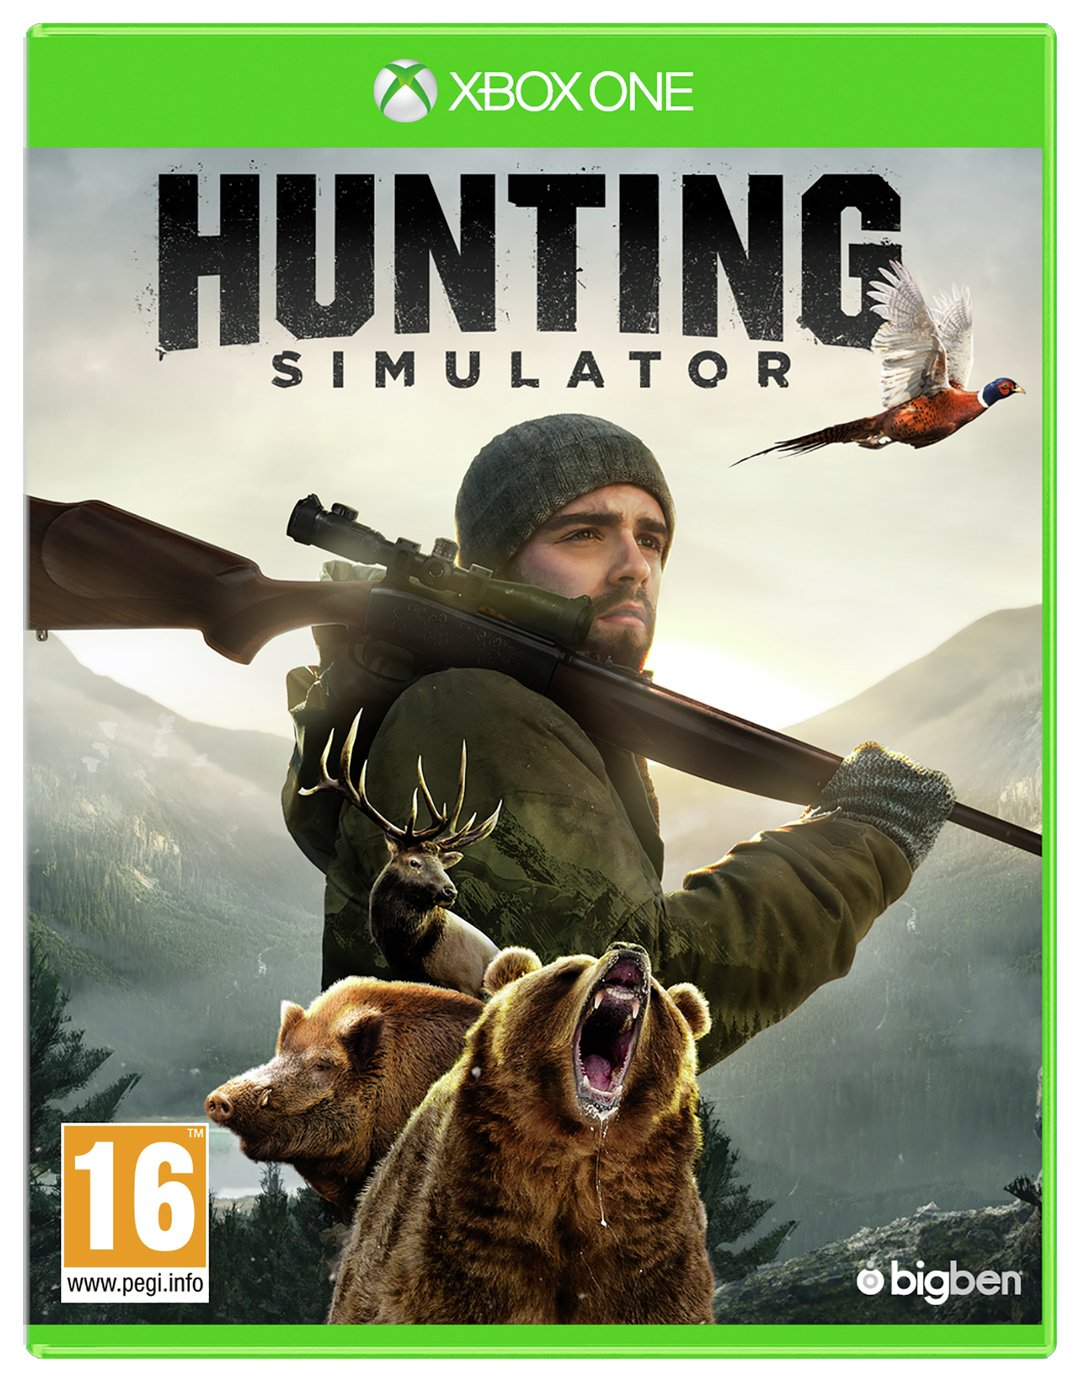 Hunting Simulator Xbox One Pre-Order Game